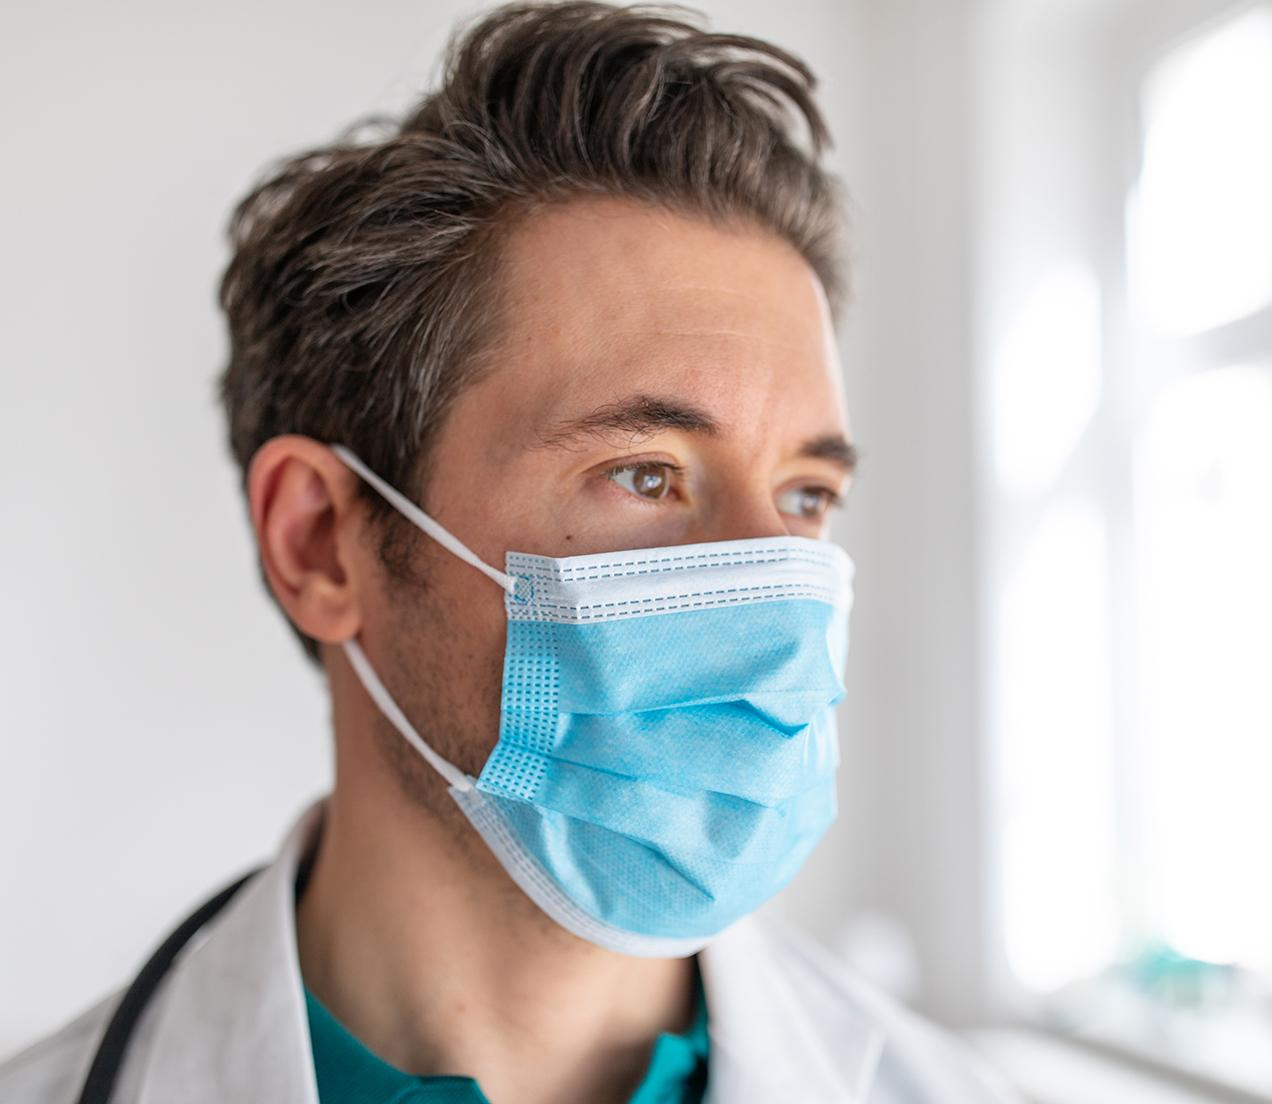 A hospital clinician wearing a mask is deep in thought